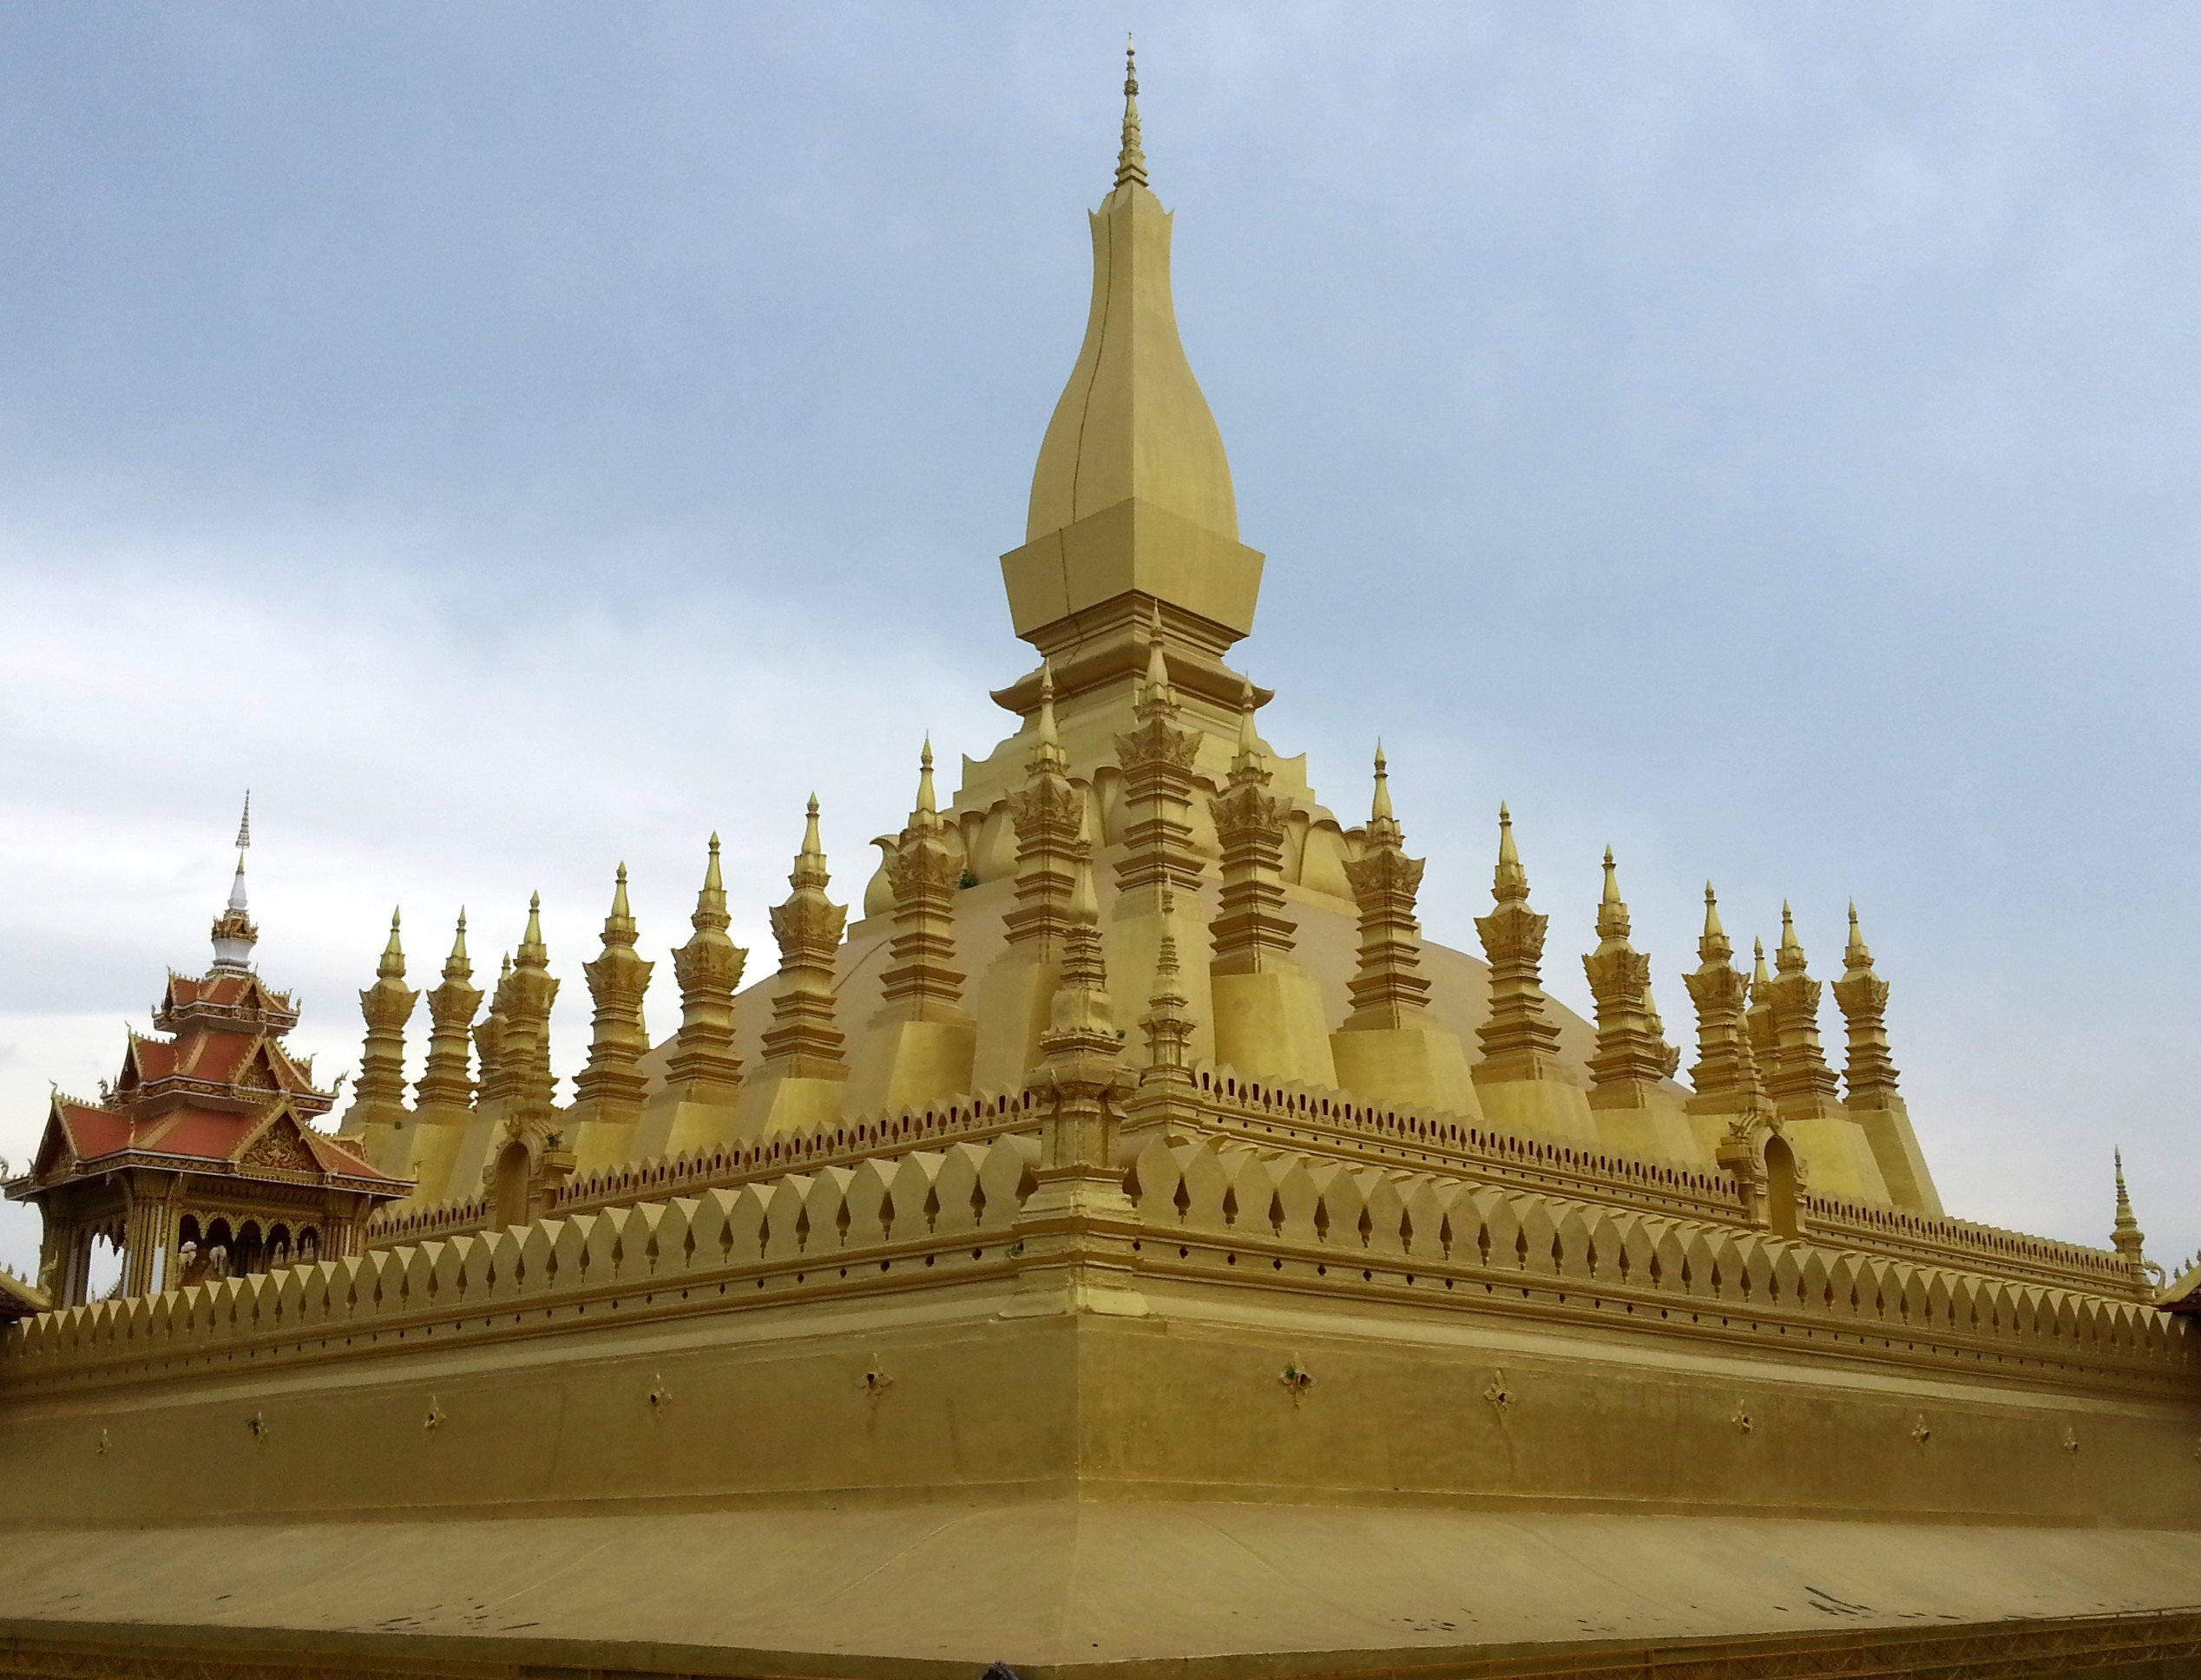 30 smaller stupa surround the great stupa at Pha That Luang